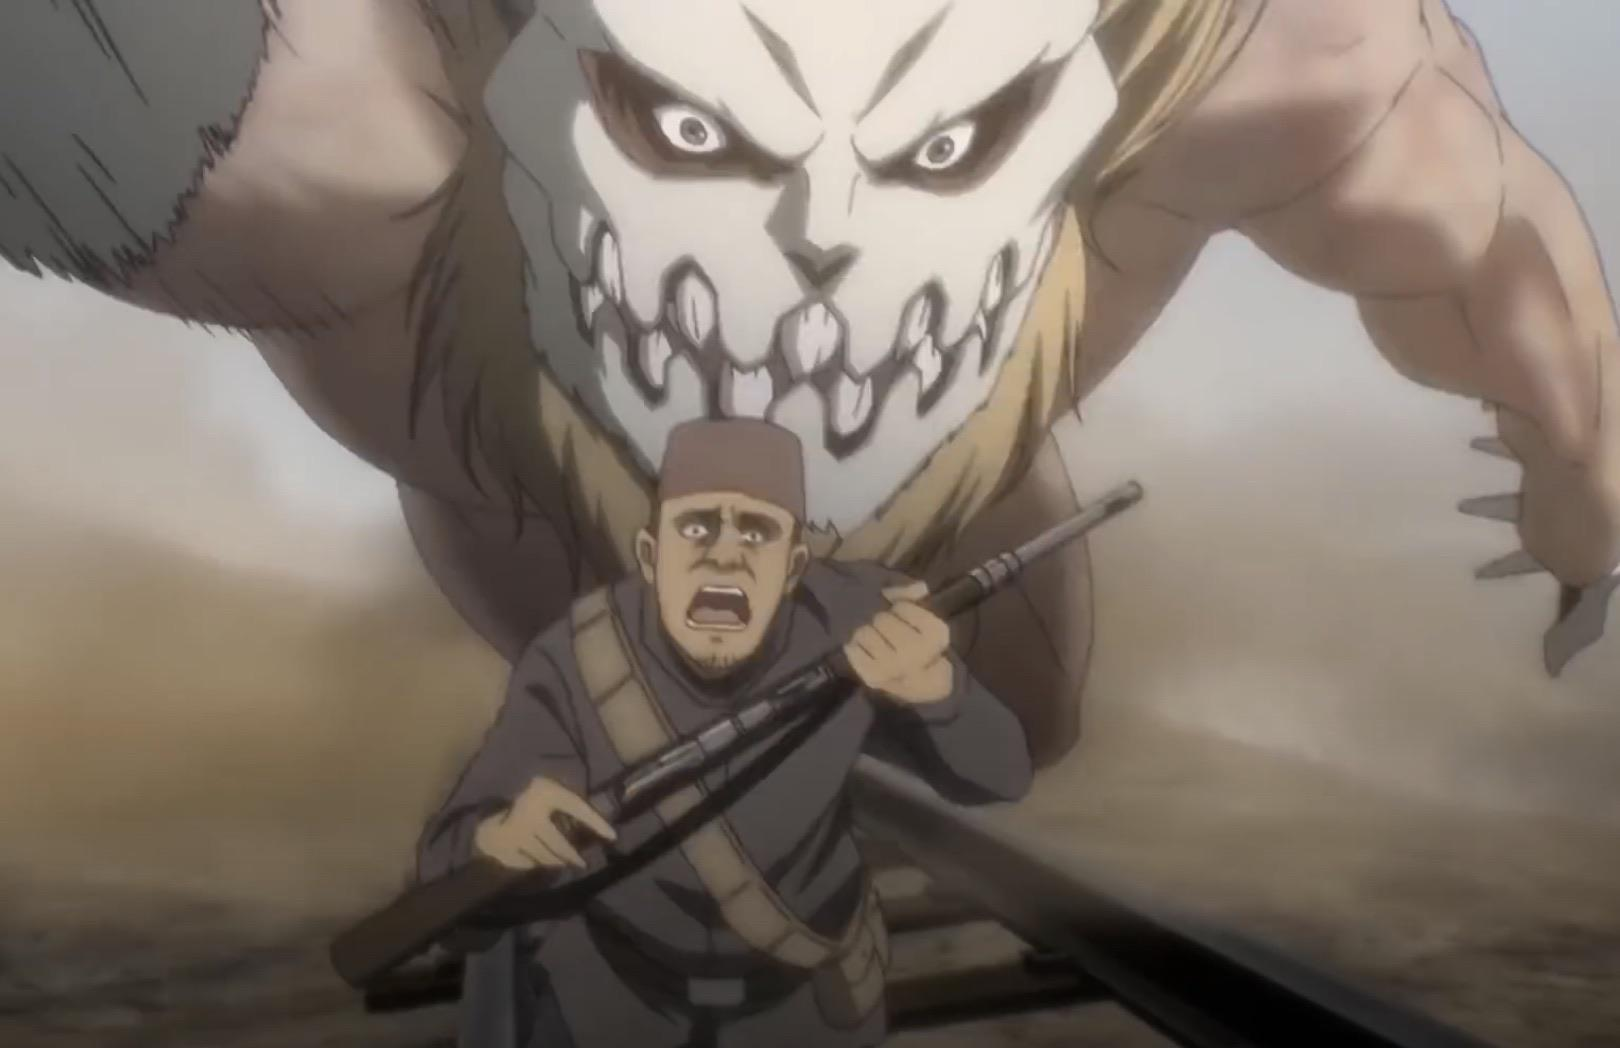 What The Attack On Titan Season 4 Trailer Hints At For The ...